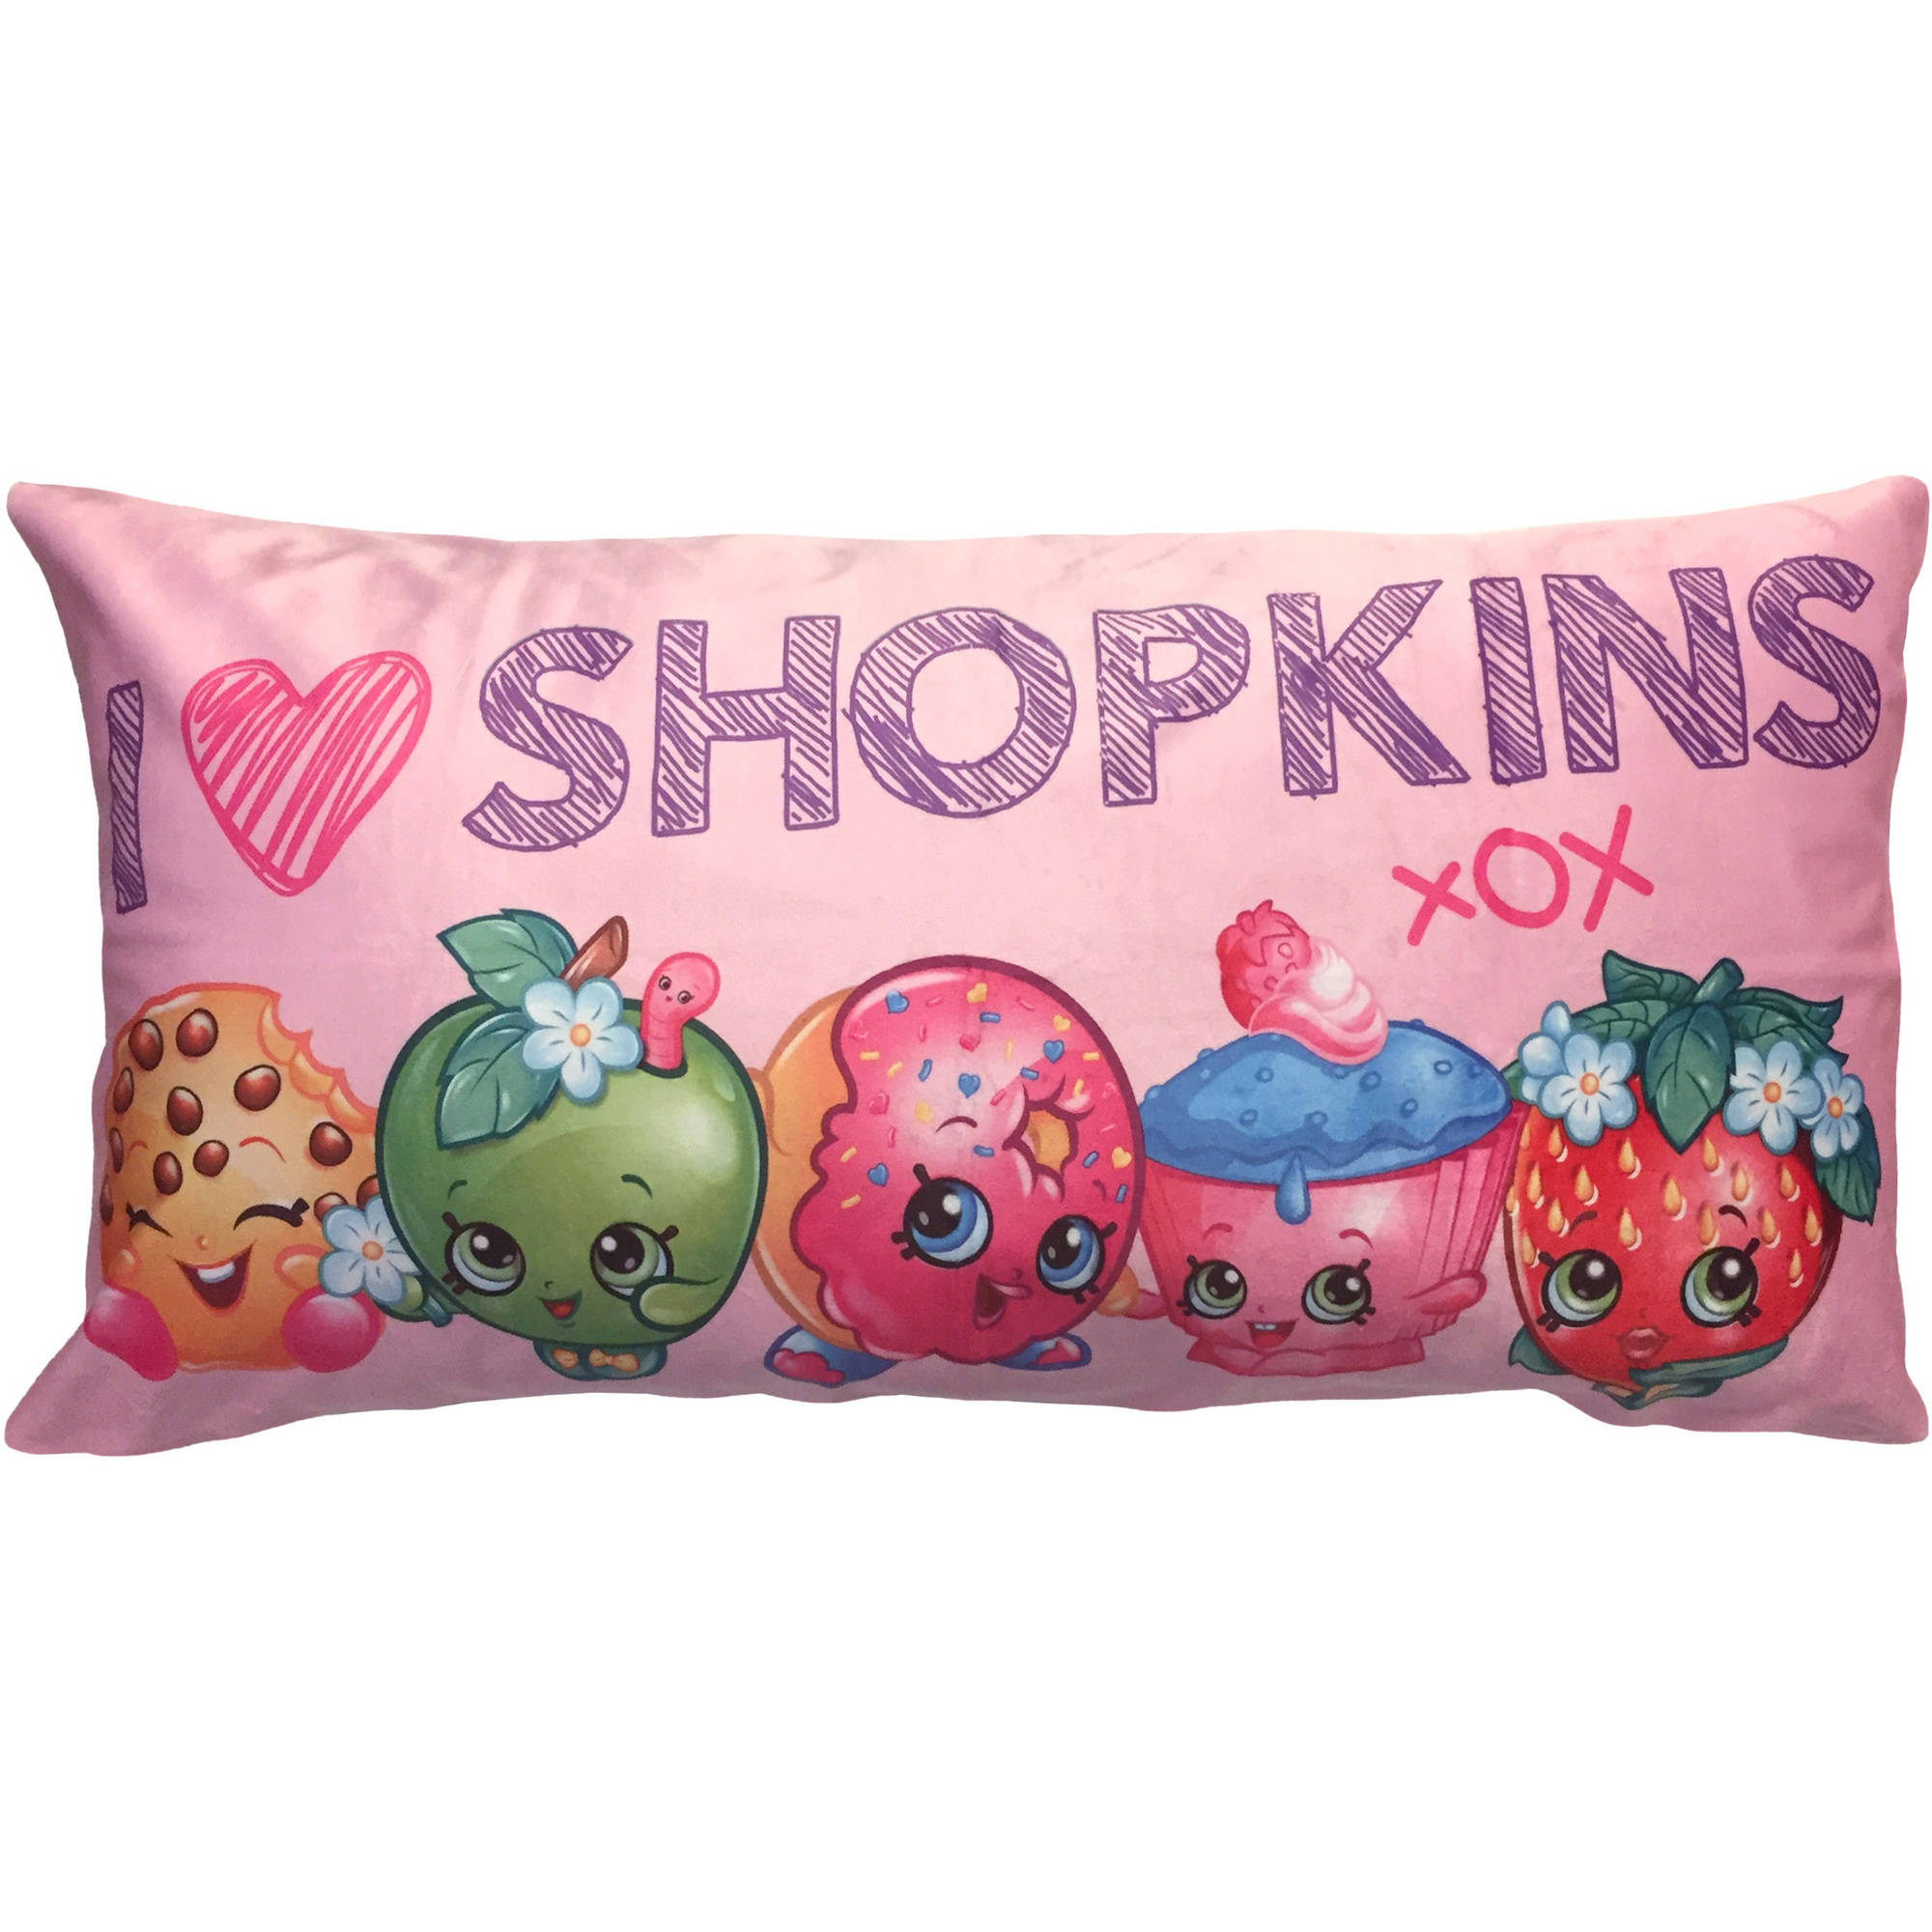 Shopkins Body Pillow